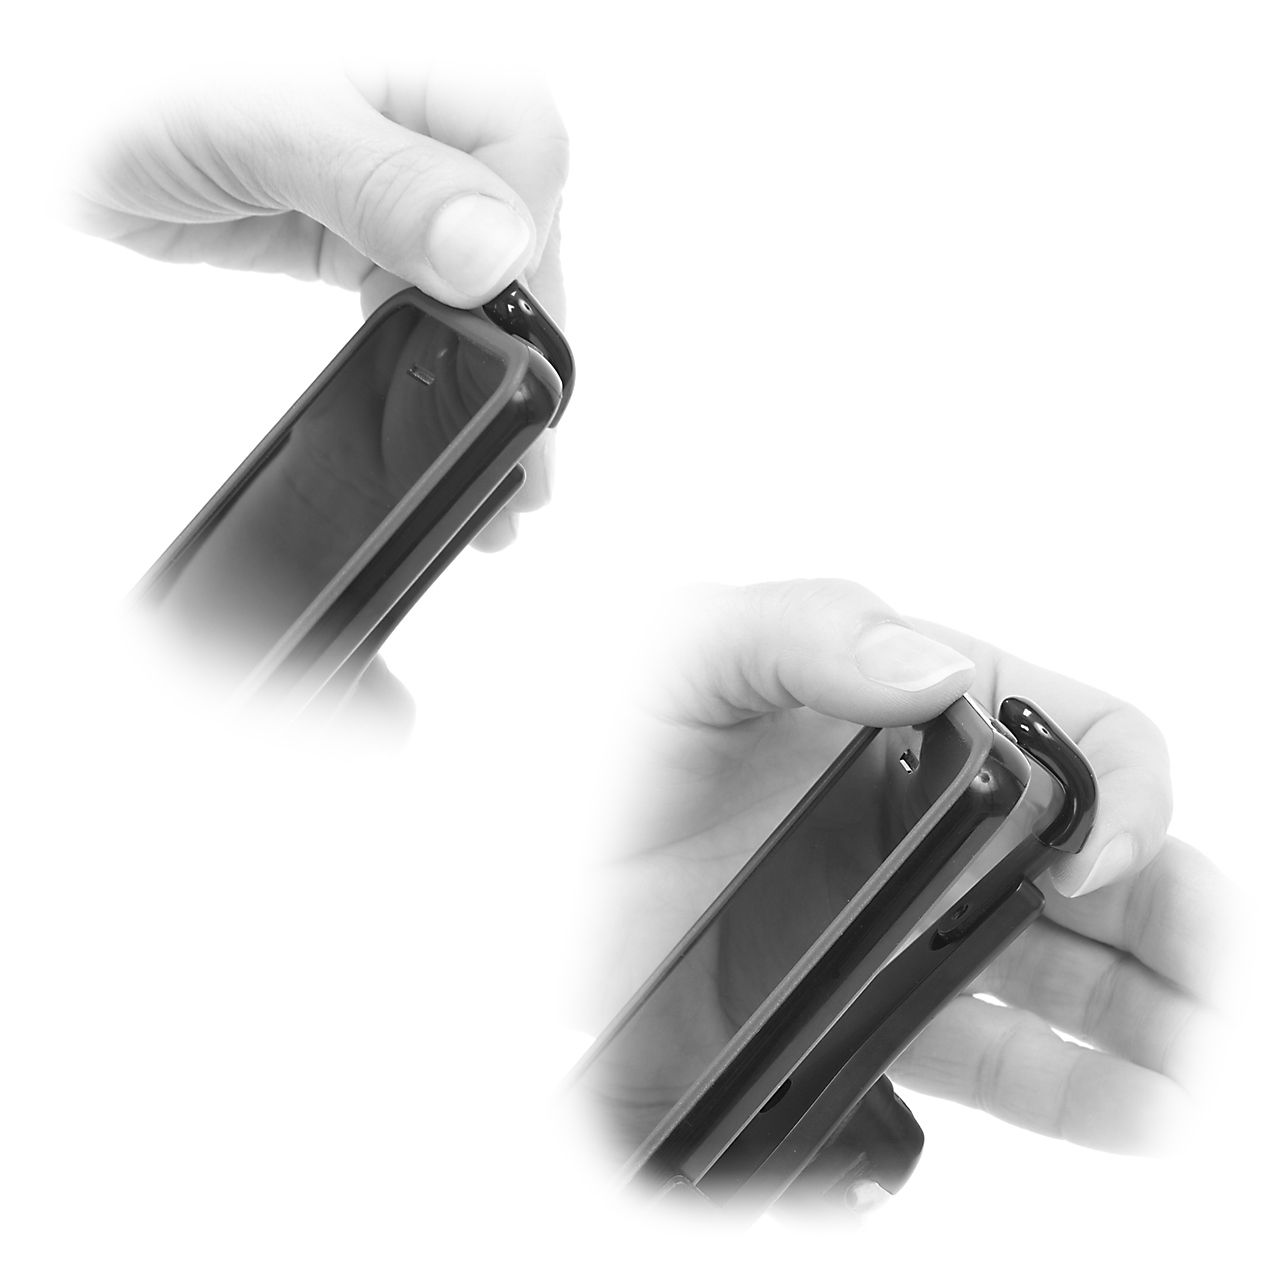 Once configured the Alloy Fingers allow just the right amount of grip for easy in, and easy out of the holder functionality.